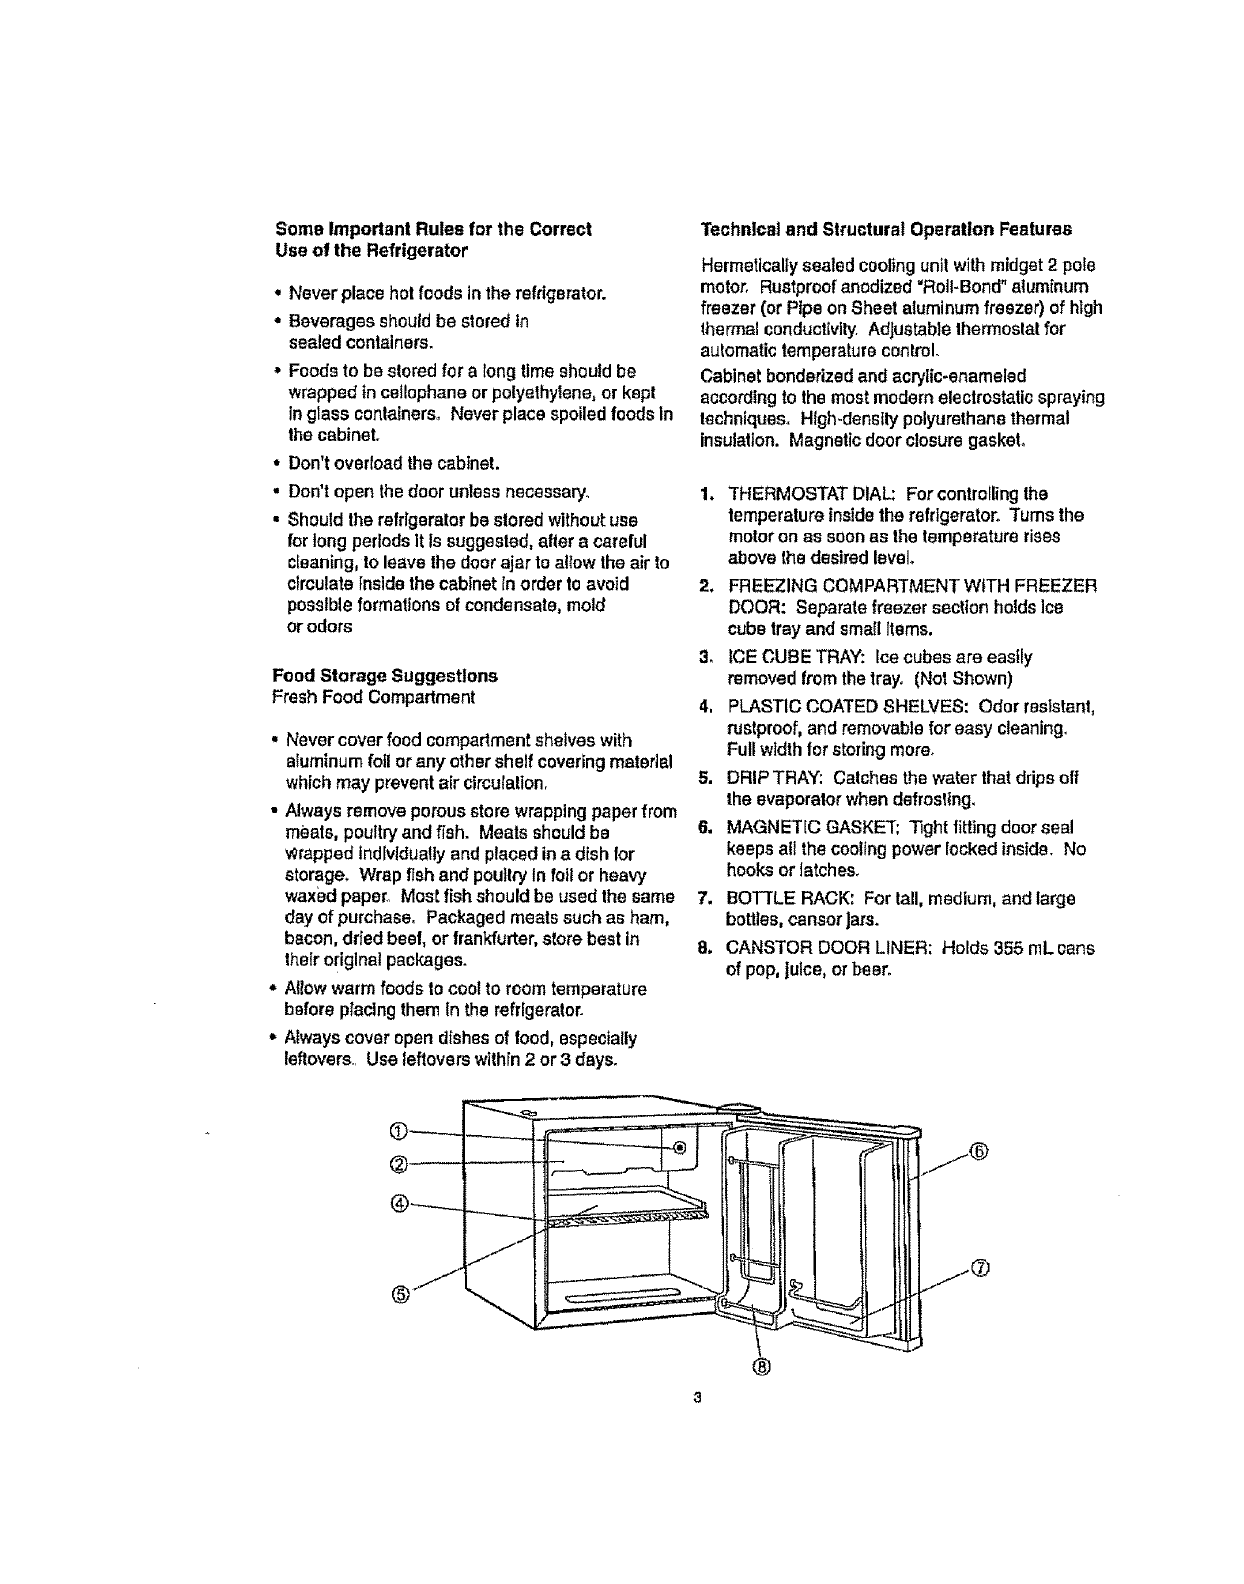 Danby DCR054W User Manual REFRIGERATOR Manuals And Guides